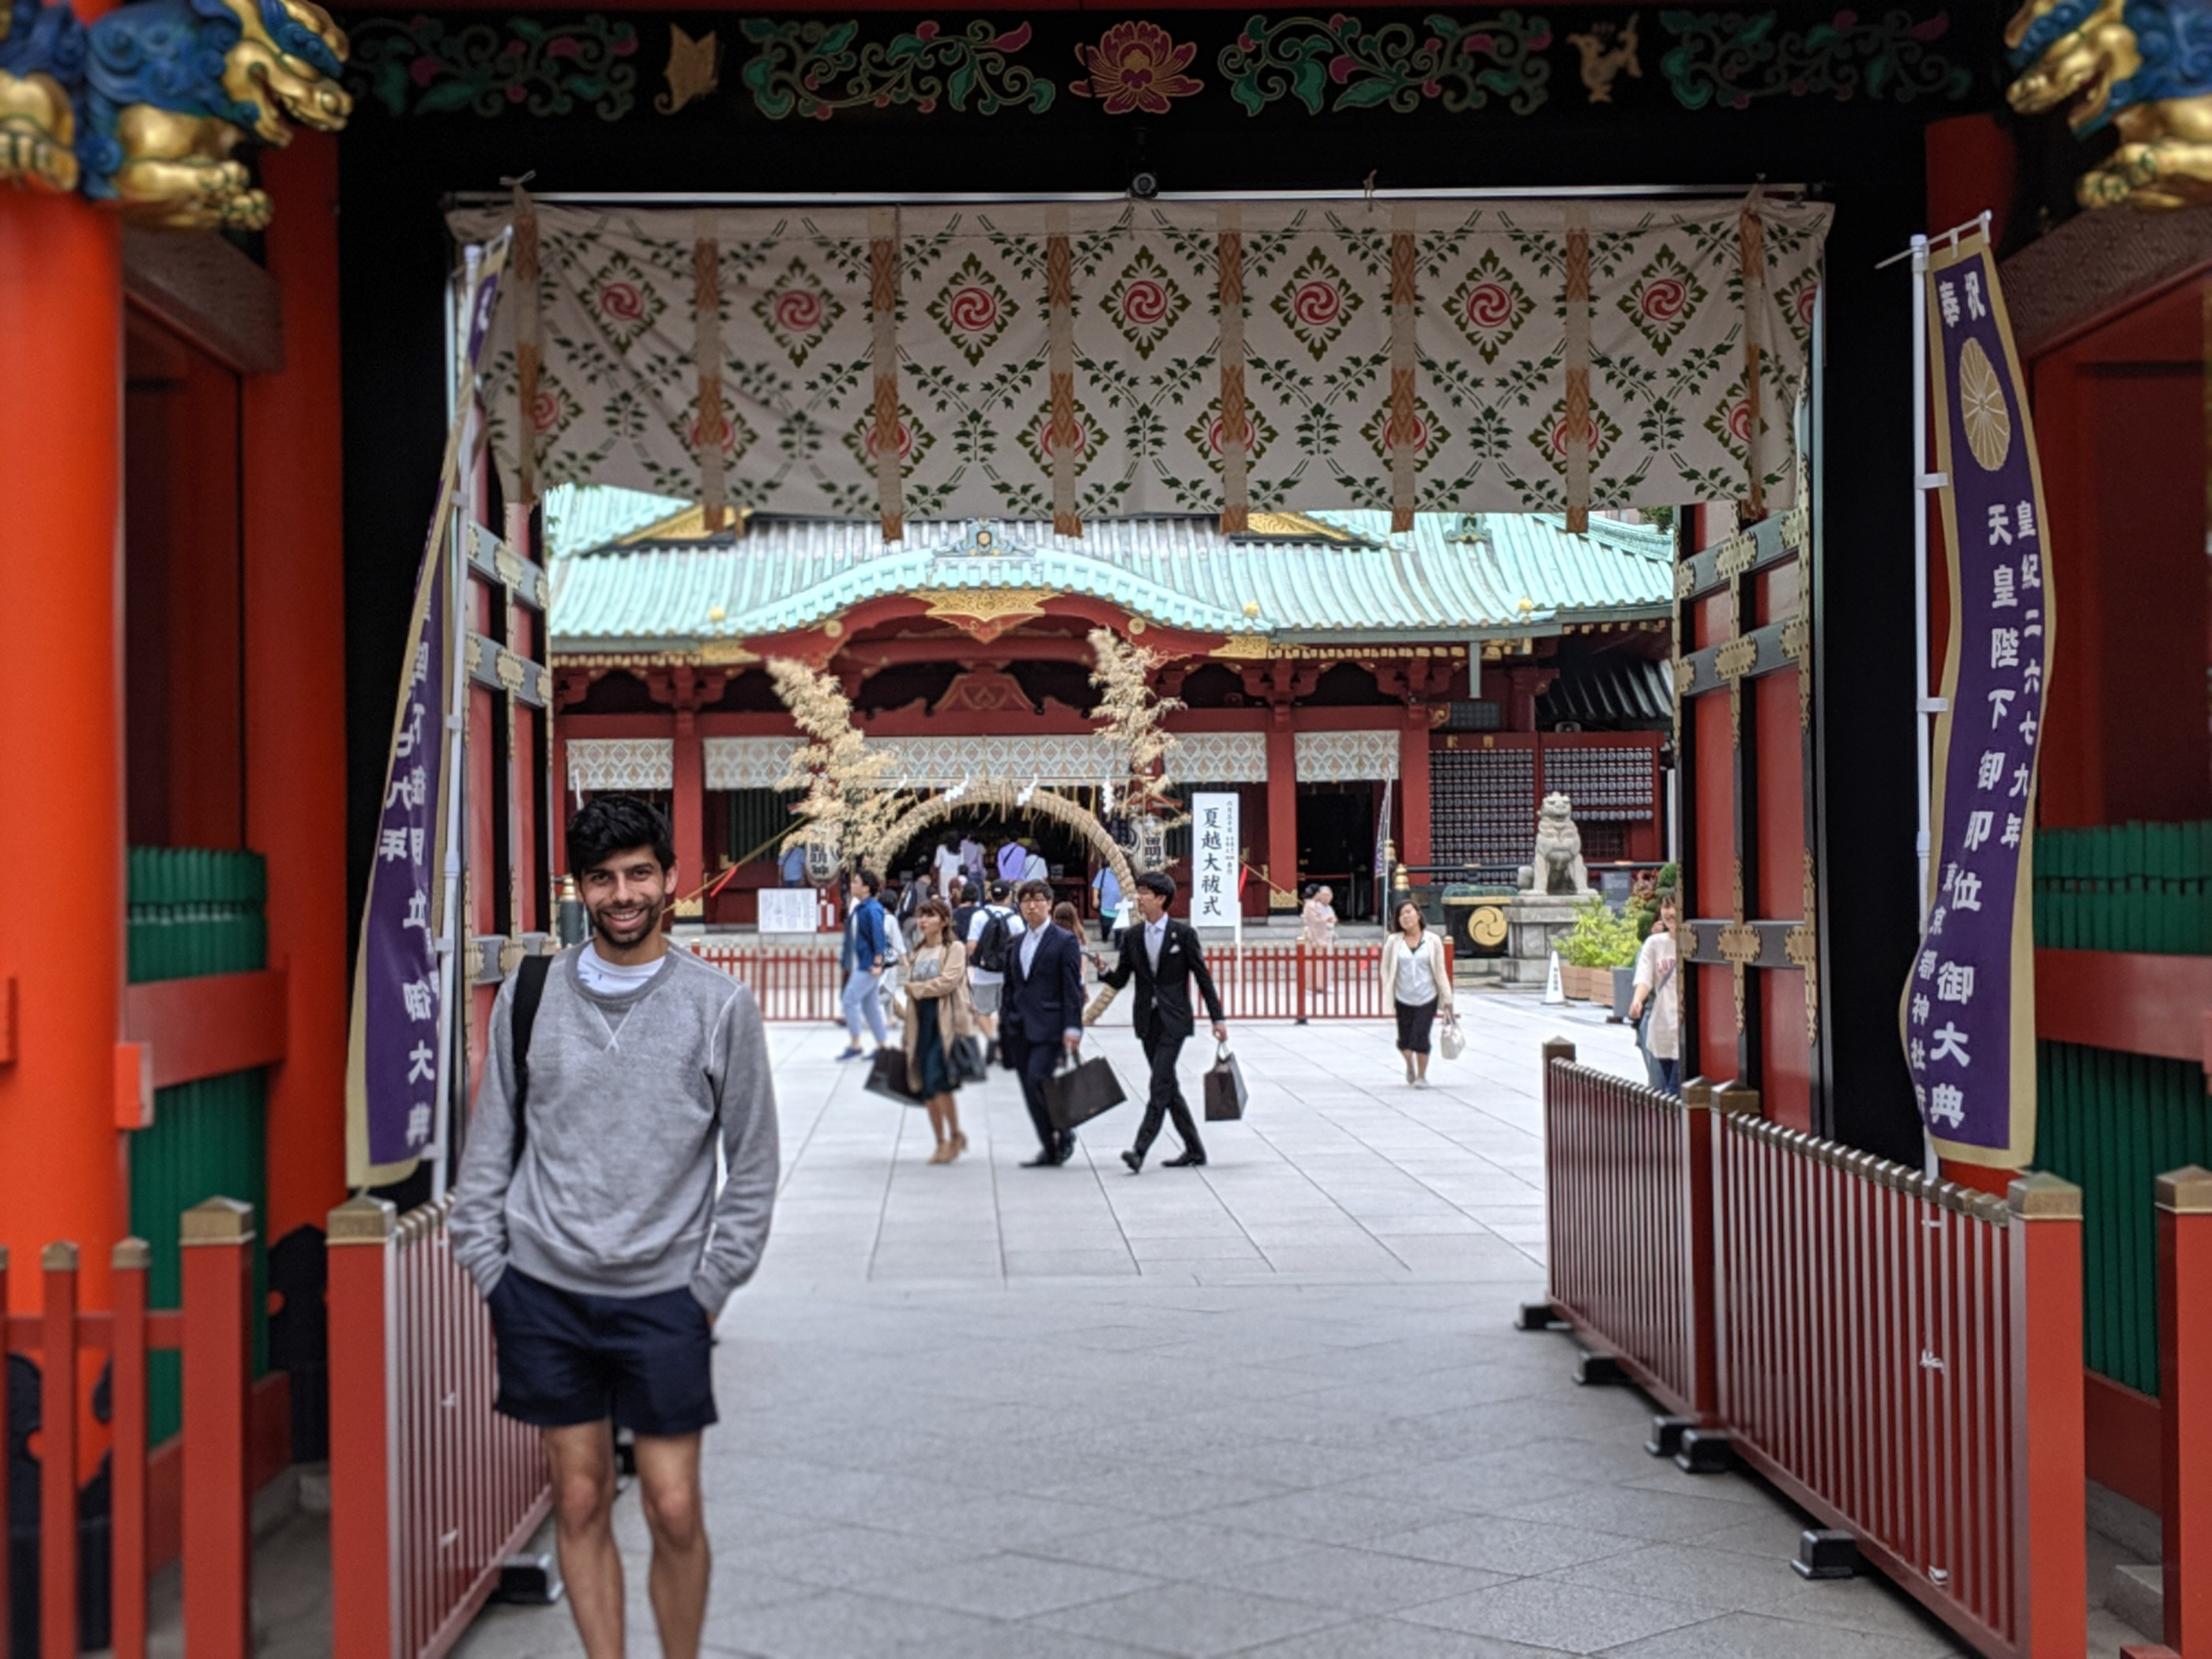 Me in front of yet another shrine